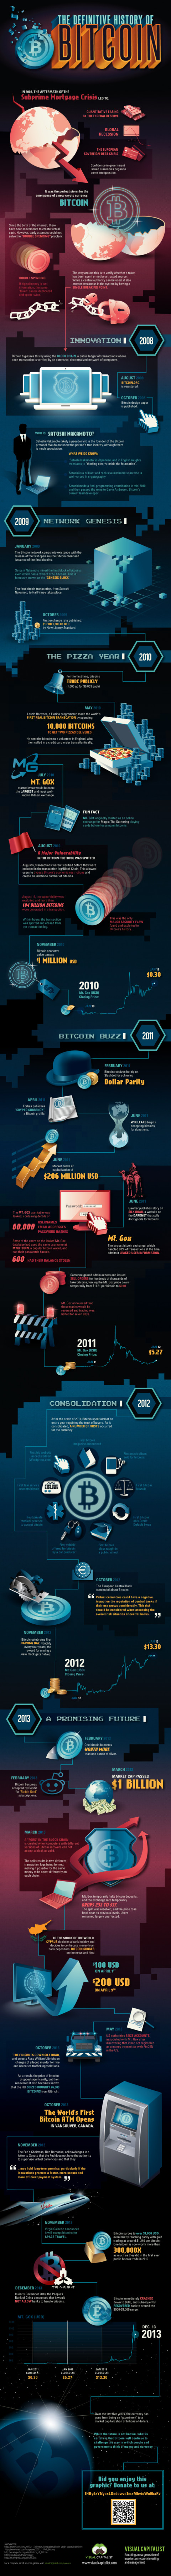 The Definitive History of Bitcoin